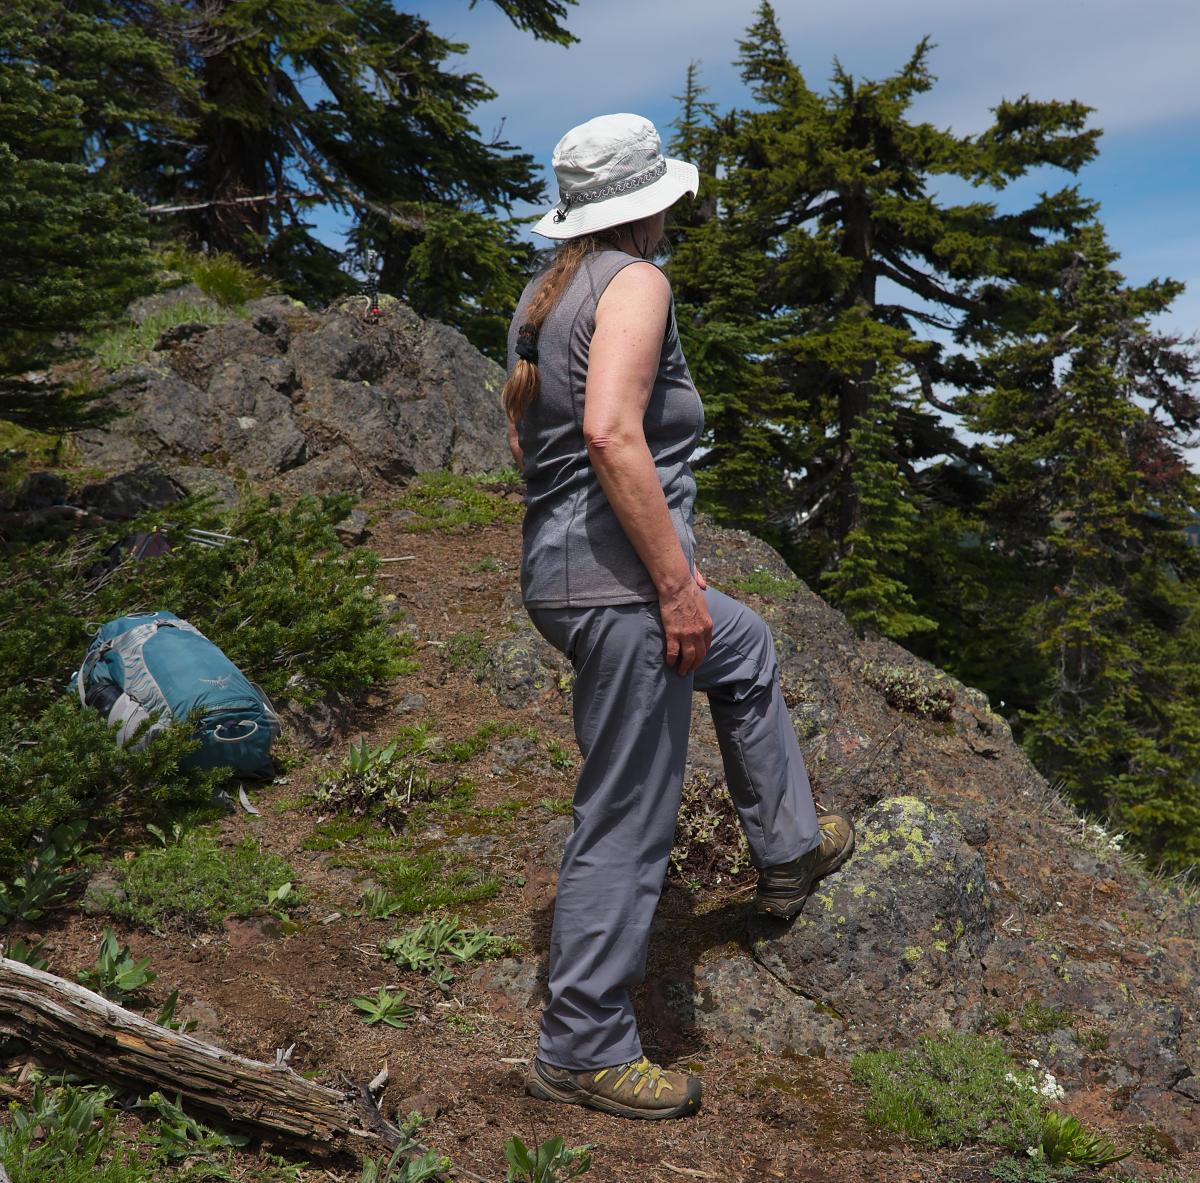 Female hiker wearing technical hiking pants, sun hat and hiking boots